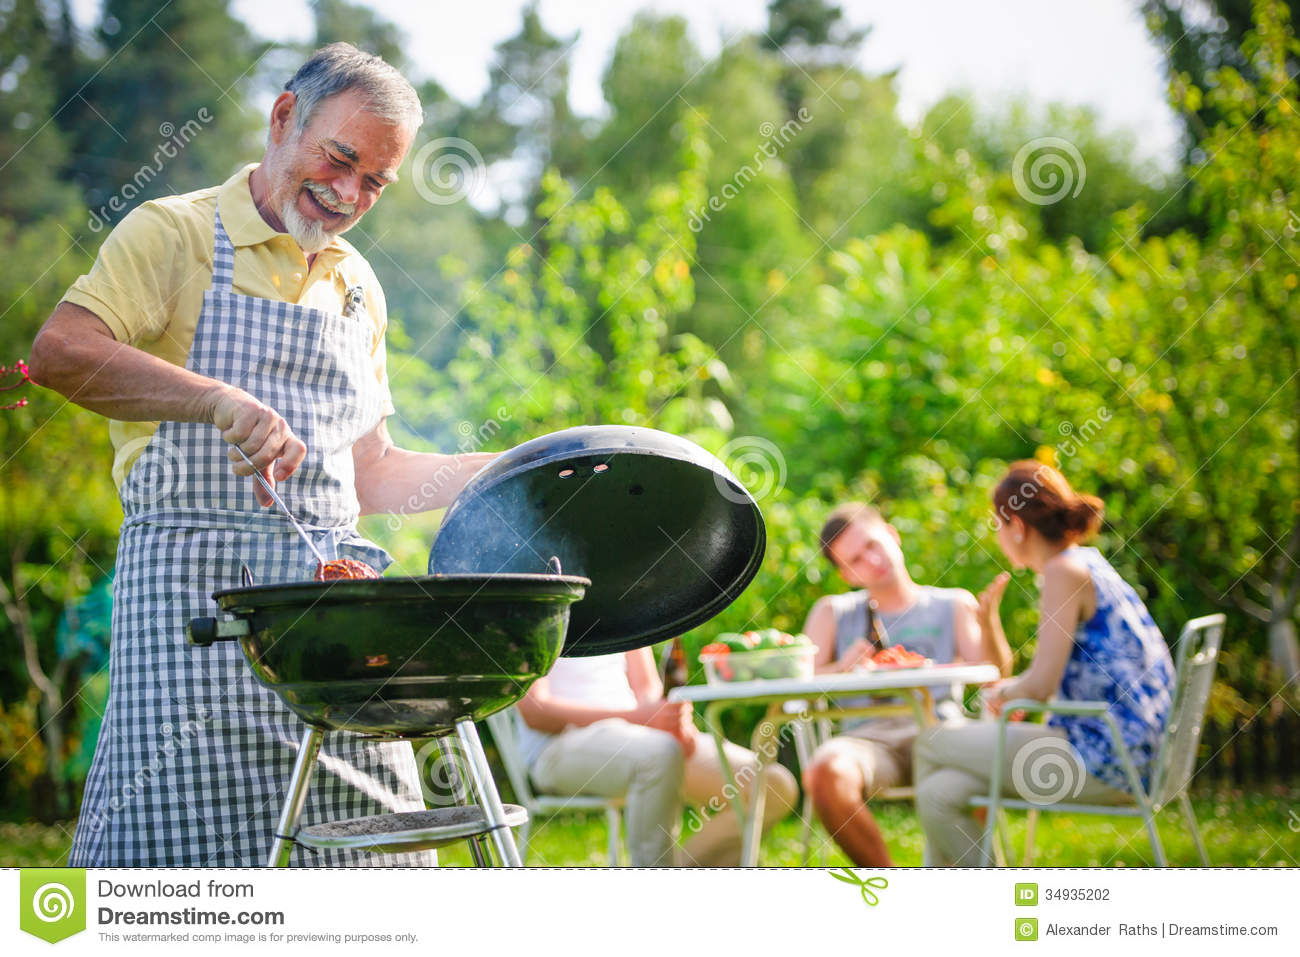 Family Having A Barbecue Party Stock Photography - Image: 34935202